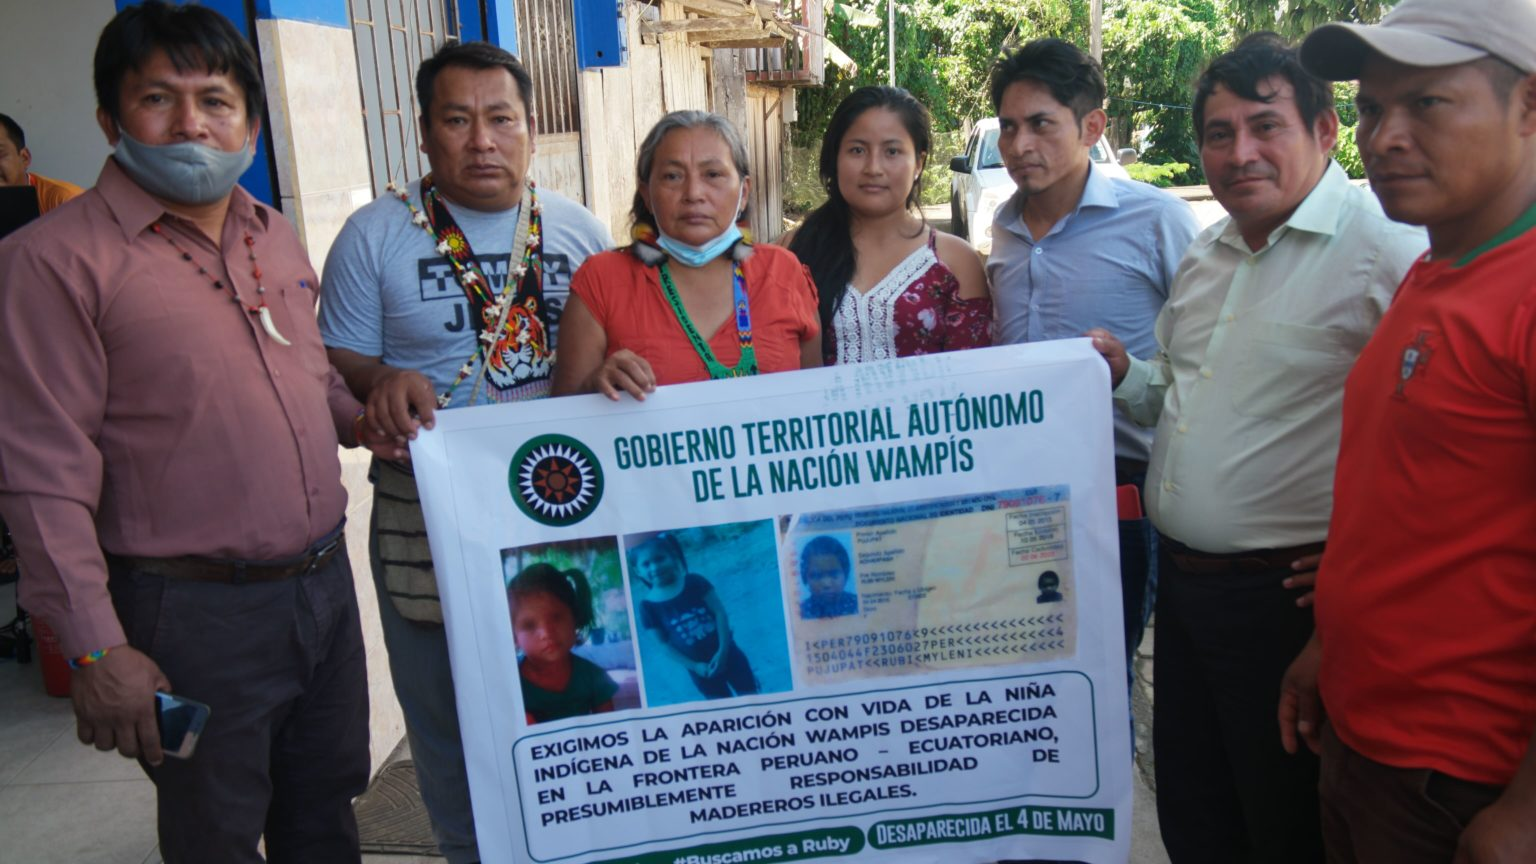 A group of from the Peruvian Wampis Indigenous group met with local and Indigenous authorities from Ecuador to discuss the disappearance of 6-year-old Rubí Pujupat Achampash. Image courtesy of Lluvia comunicación/GTANW/PSHA.